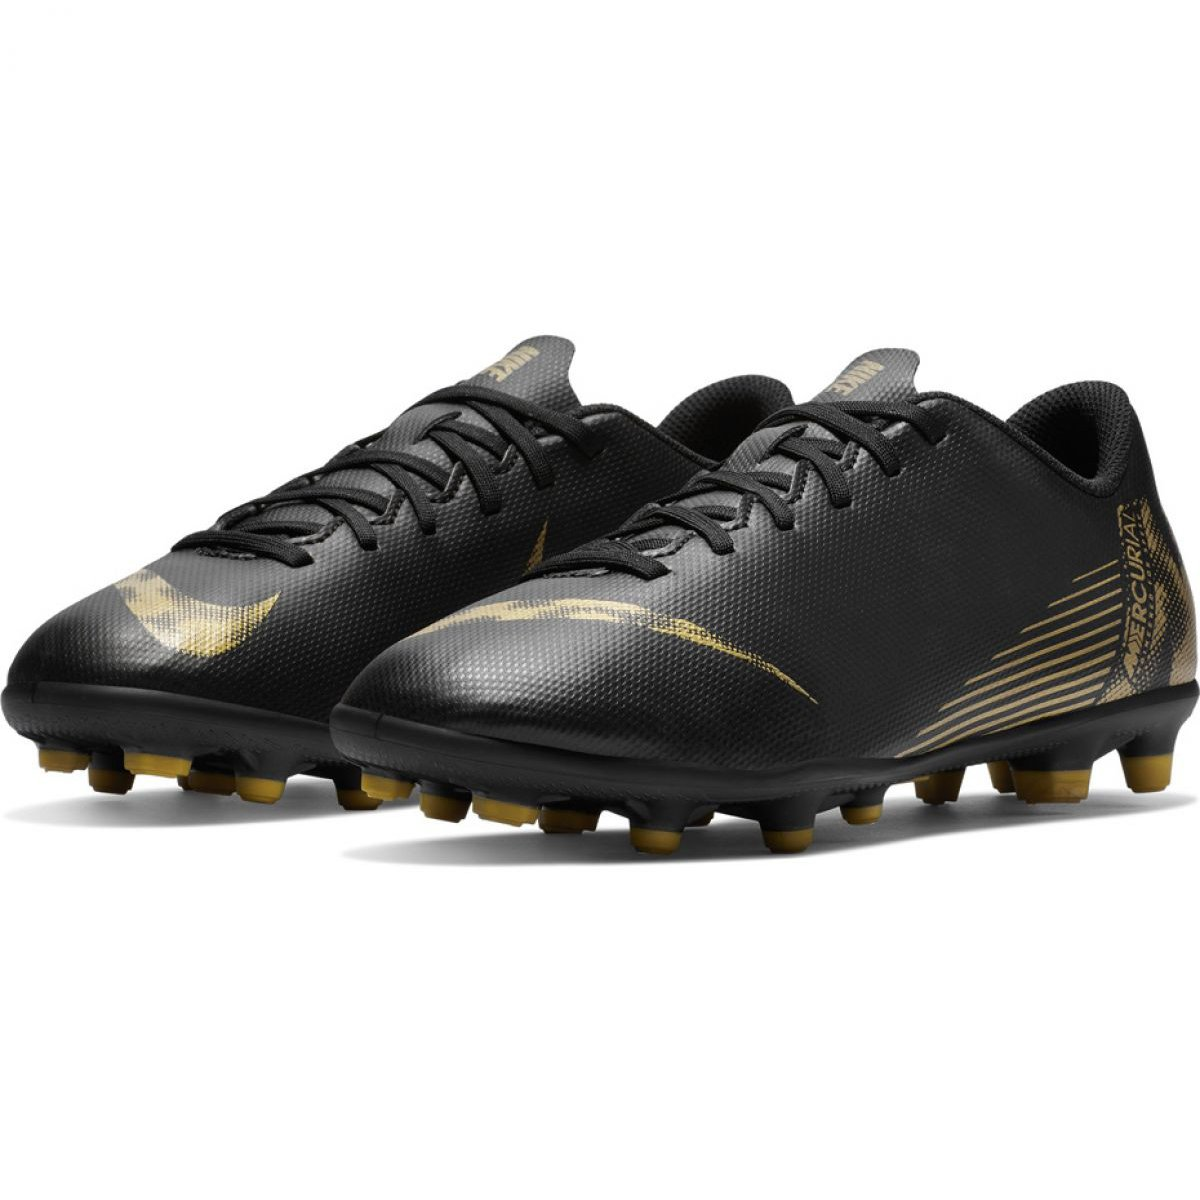 NIKE VAPOR 12 CLUB GS FG/MG AH7350-077 JR